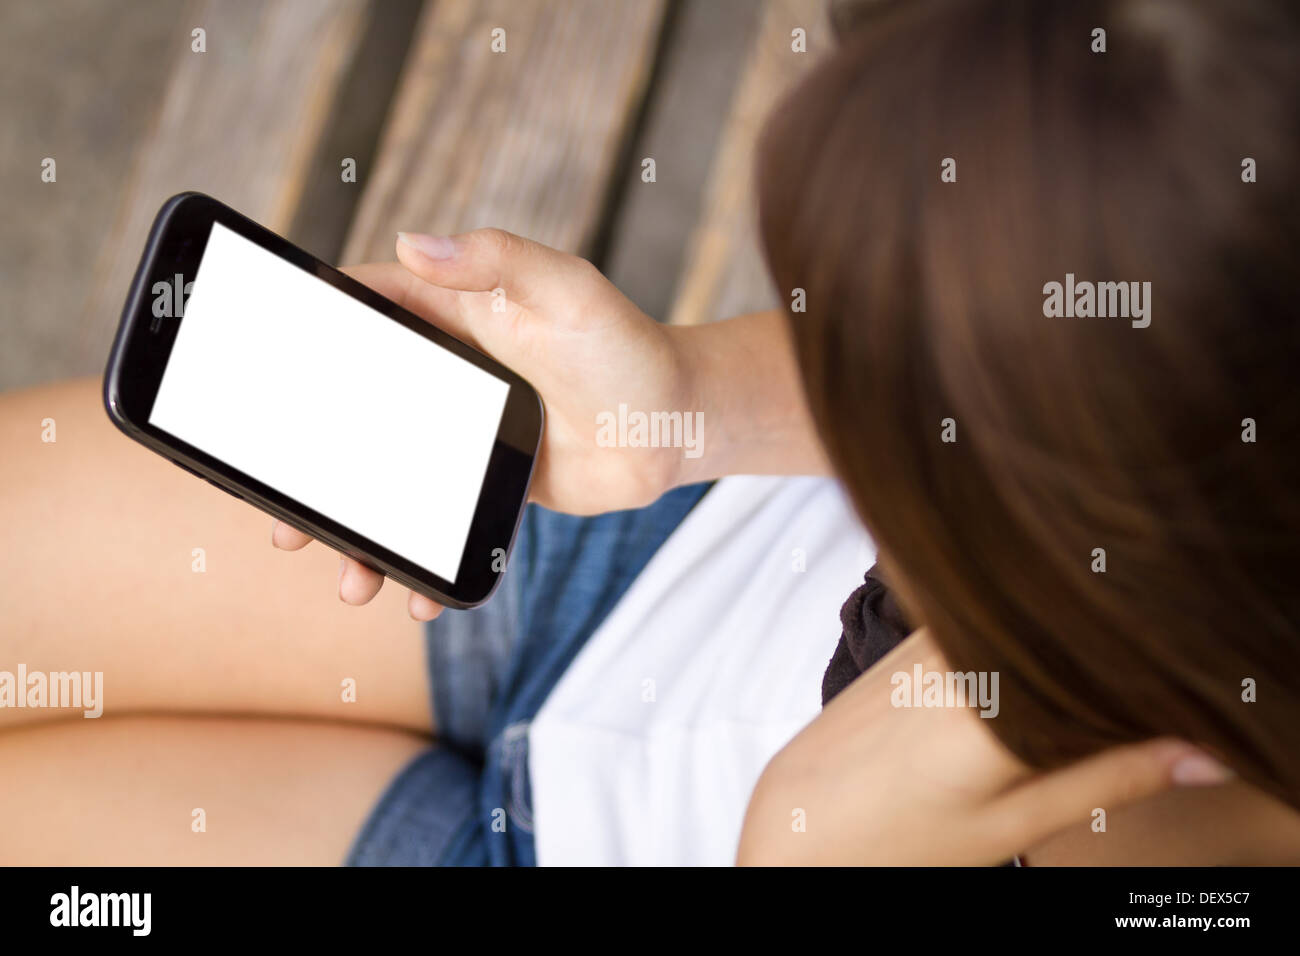 Young girl holding 5 inch touchscreen smartphone - Stock Image